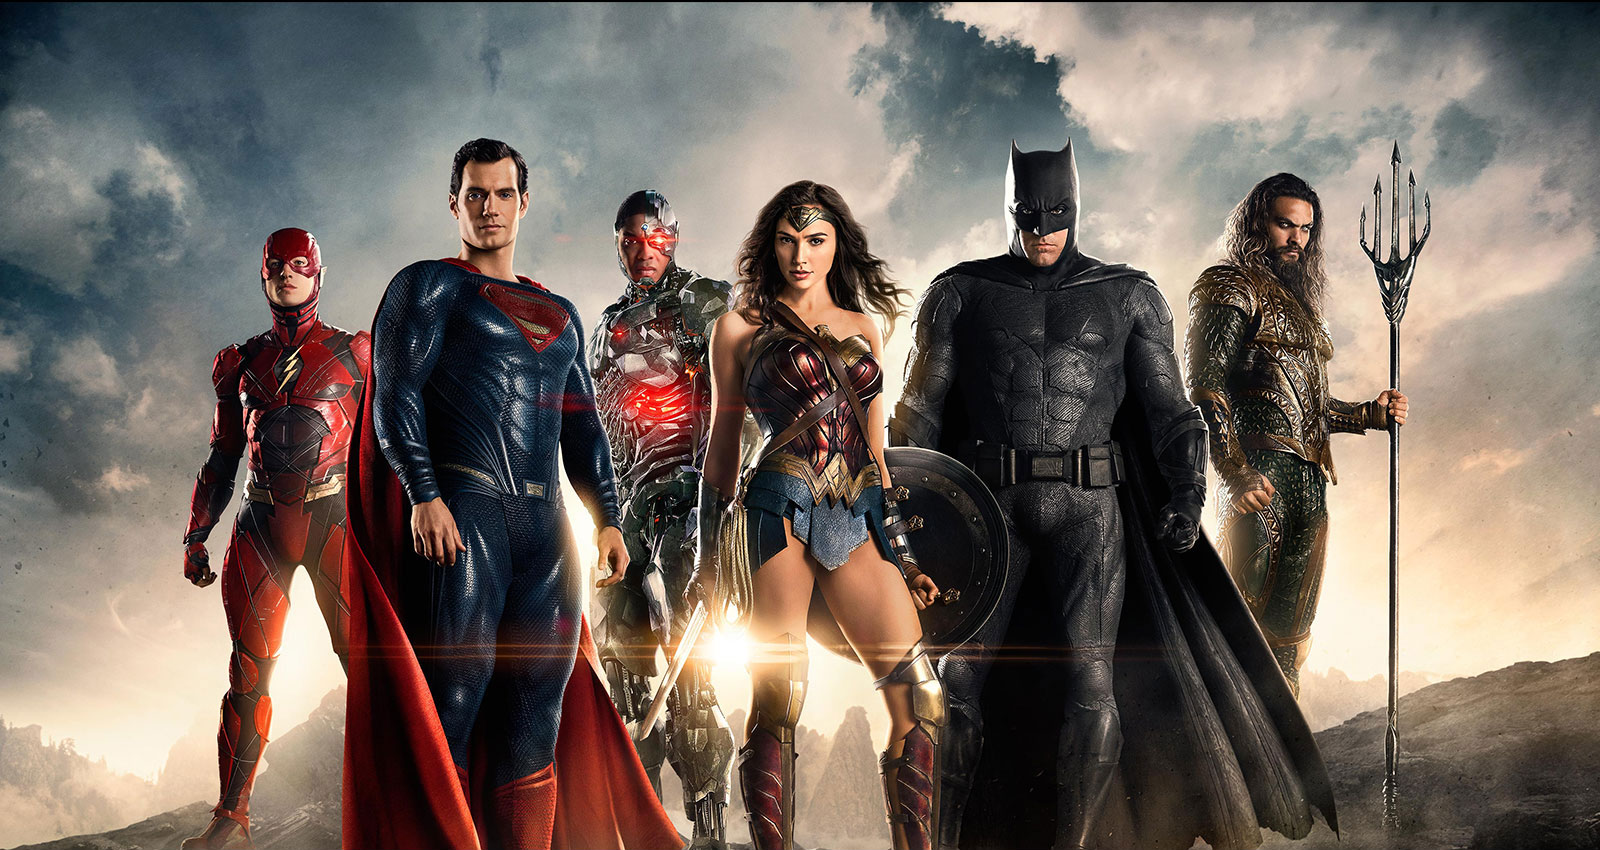 Review: Despite its issues, 'Justice League' is worth celebrating as a step in the right direction